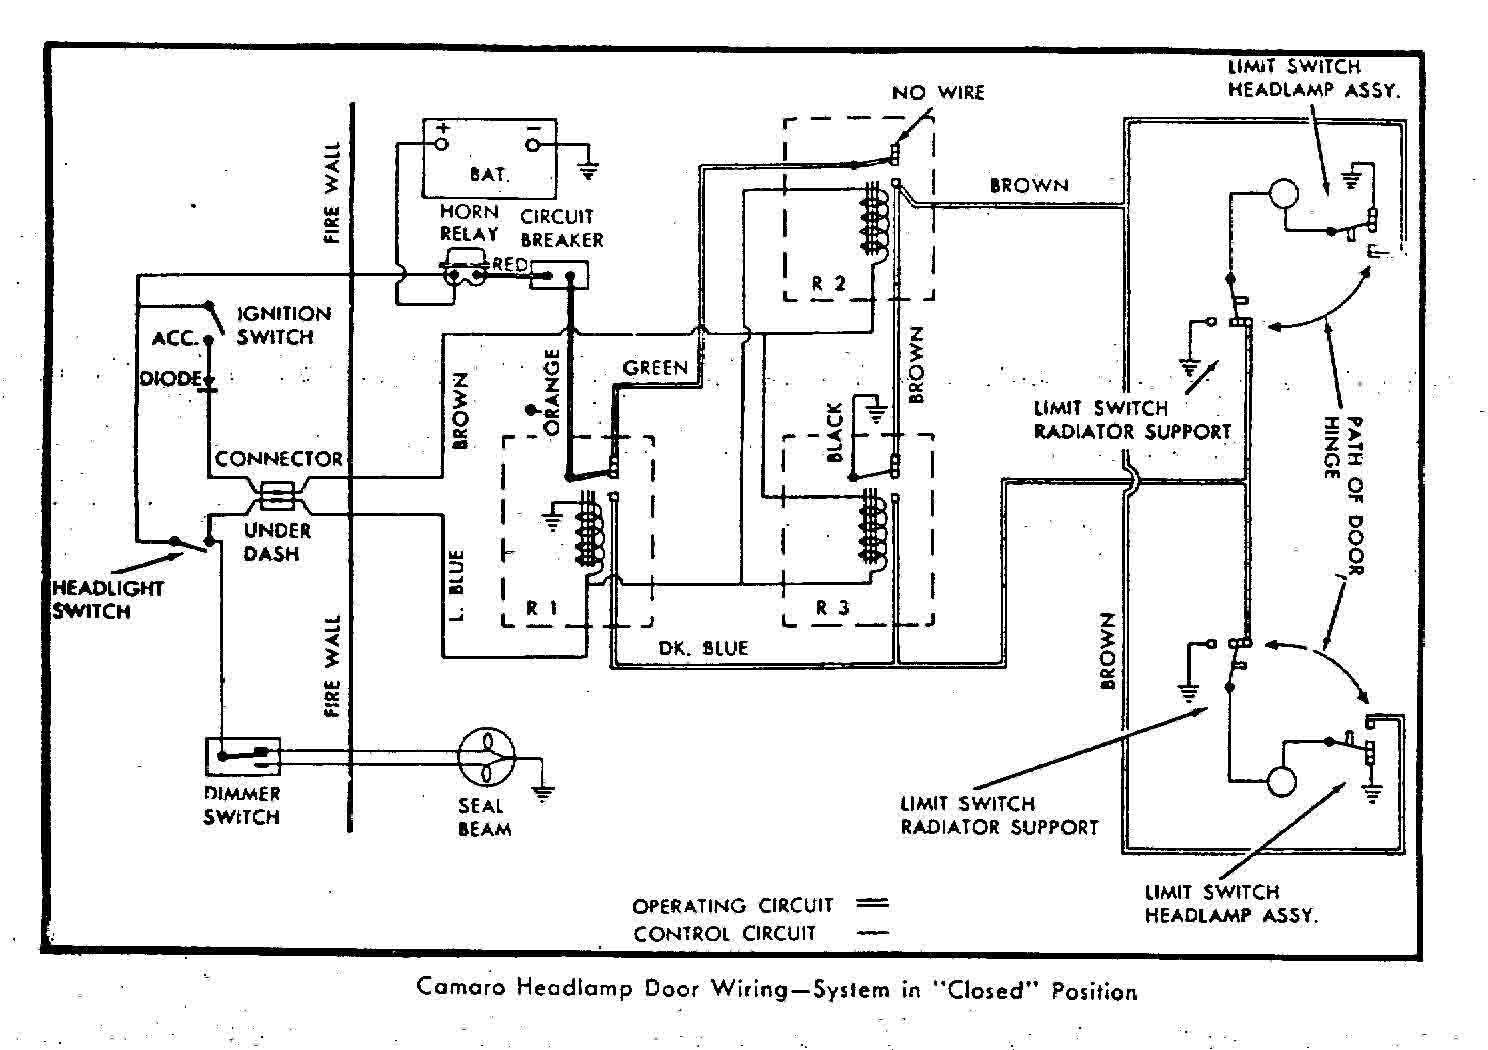 hight resolution of 1968 camaro backup light wiring schematic wiring diagram mega 68 camaro light switch wiring diagram